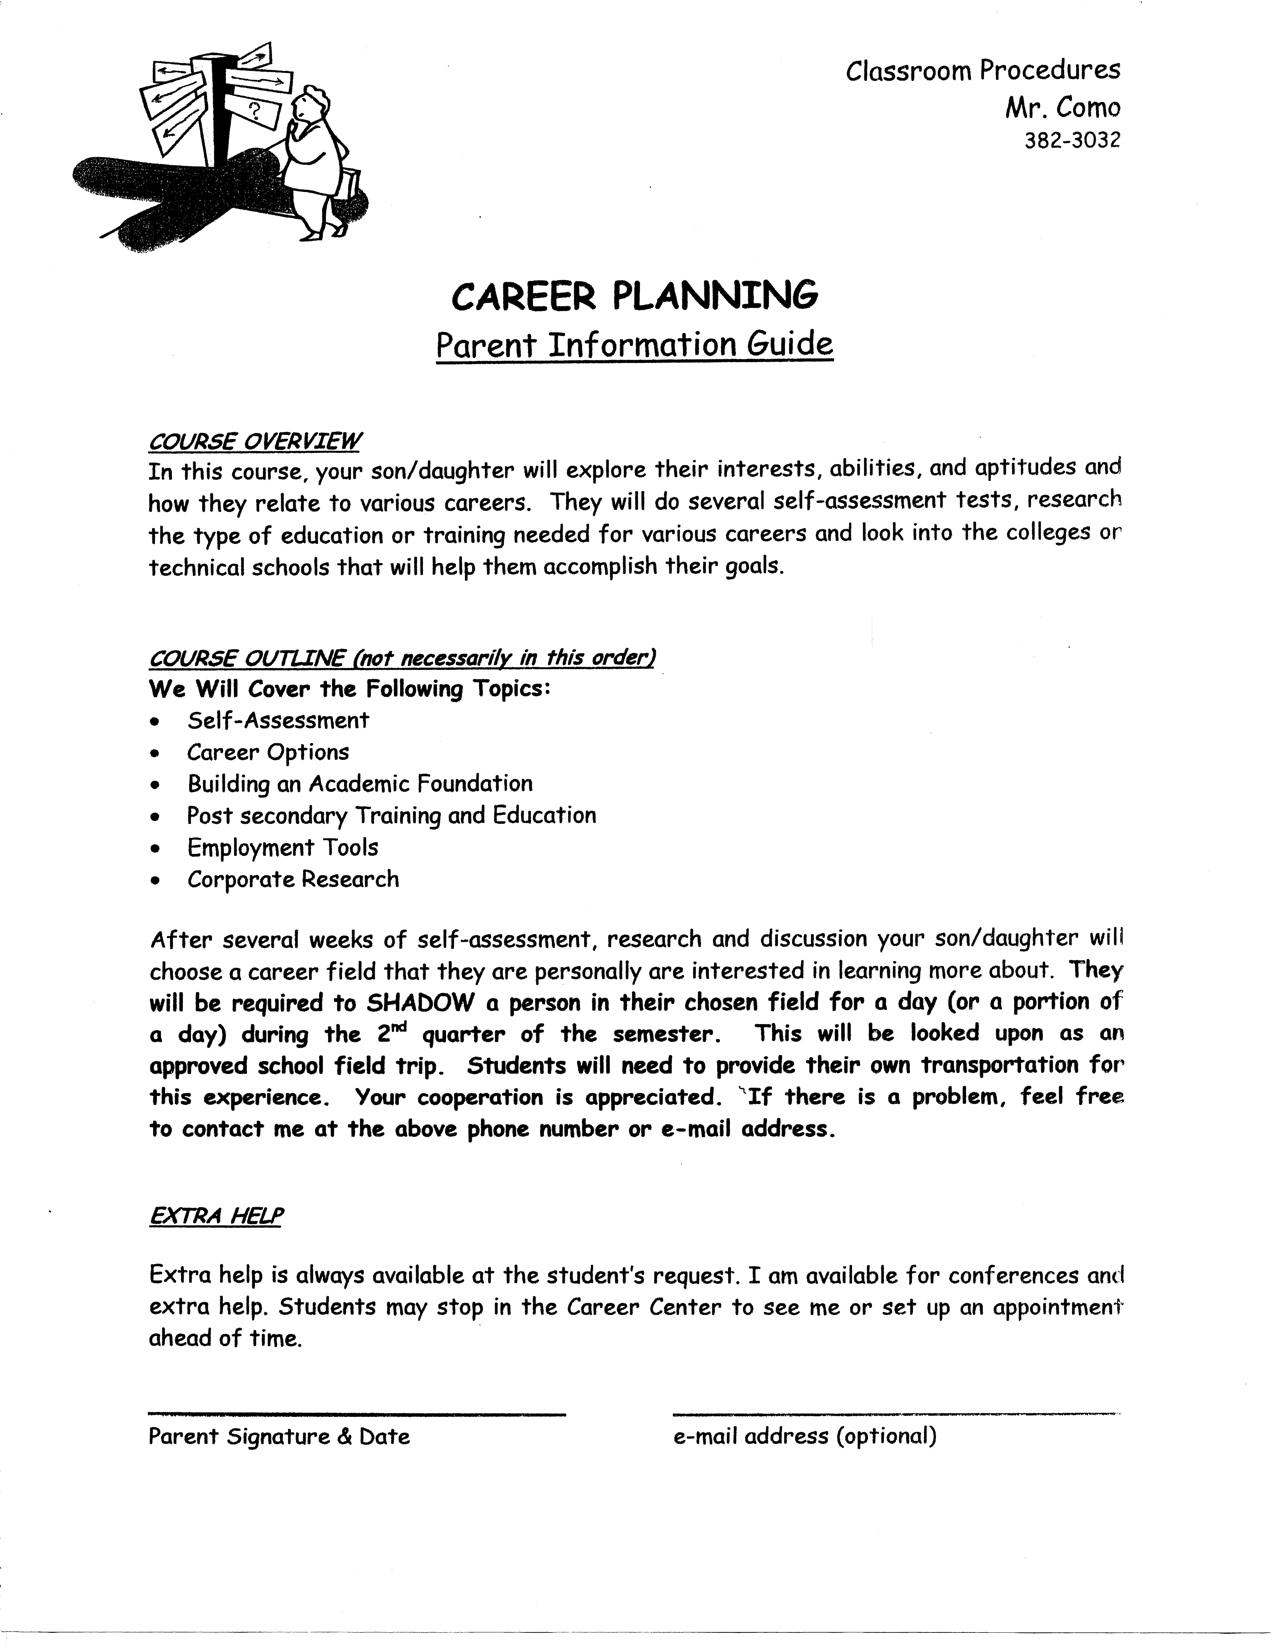 career planning course outline mr como s career planning blog like this